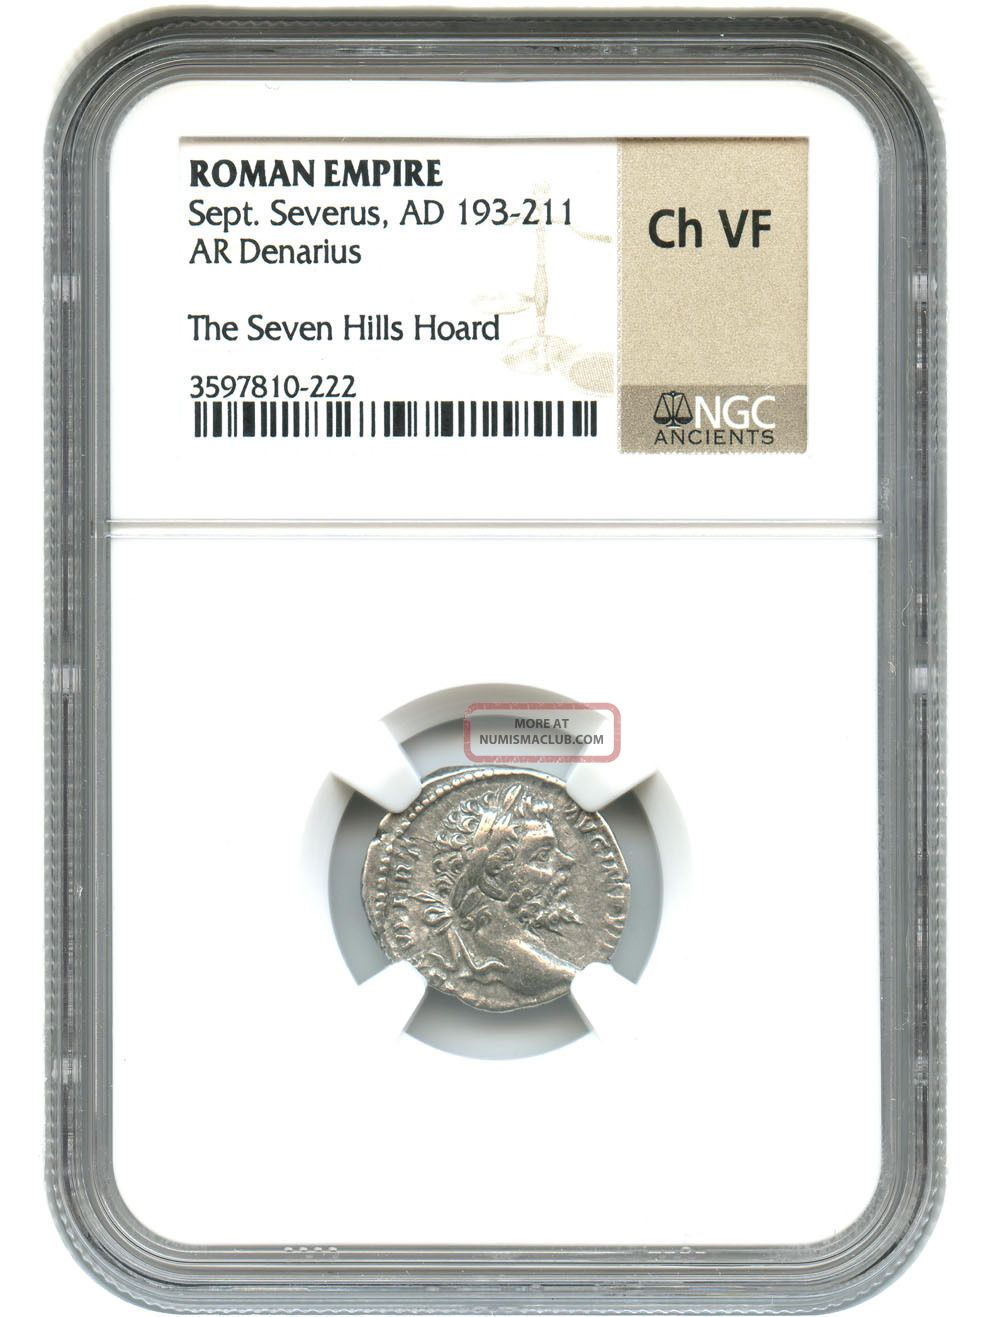 Ad 193 - 211 Sept.  Severus Ar Denarius Ngc Choice Vf (roman Empire) Coins: Ancient photo